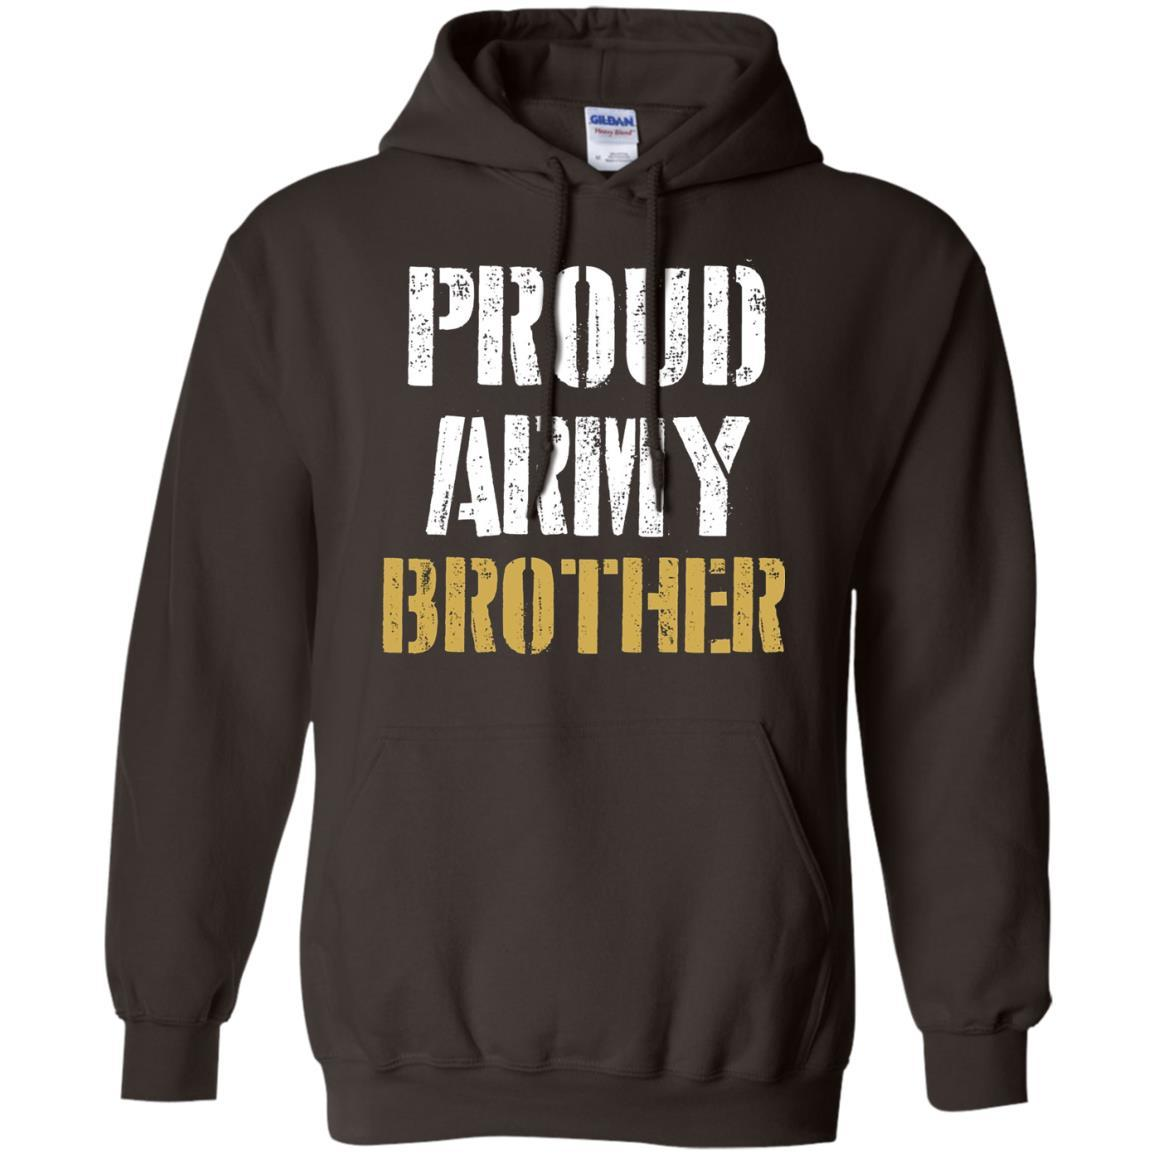 Proud Army Brother Shirt - Best Gift for Army Brother Shirt